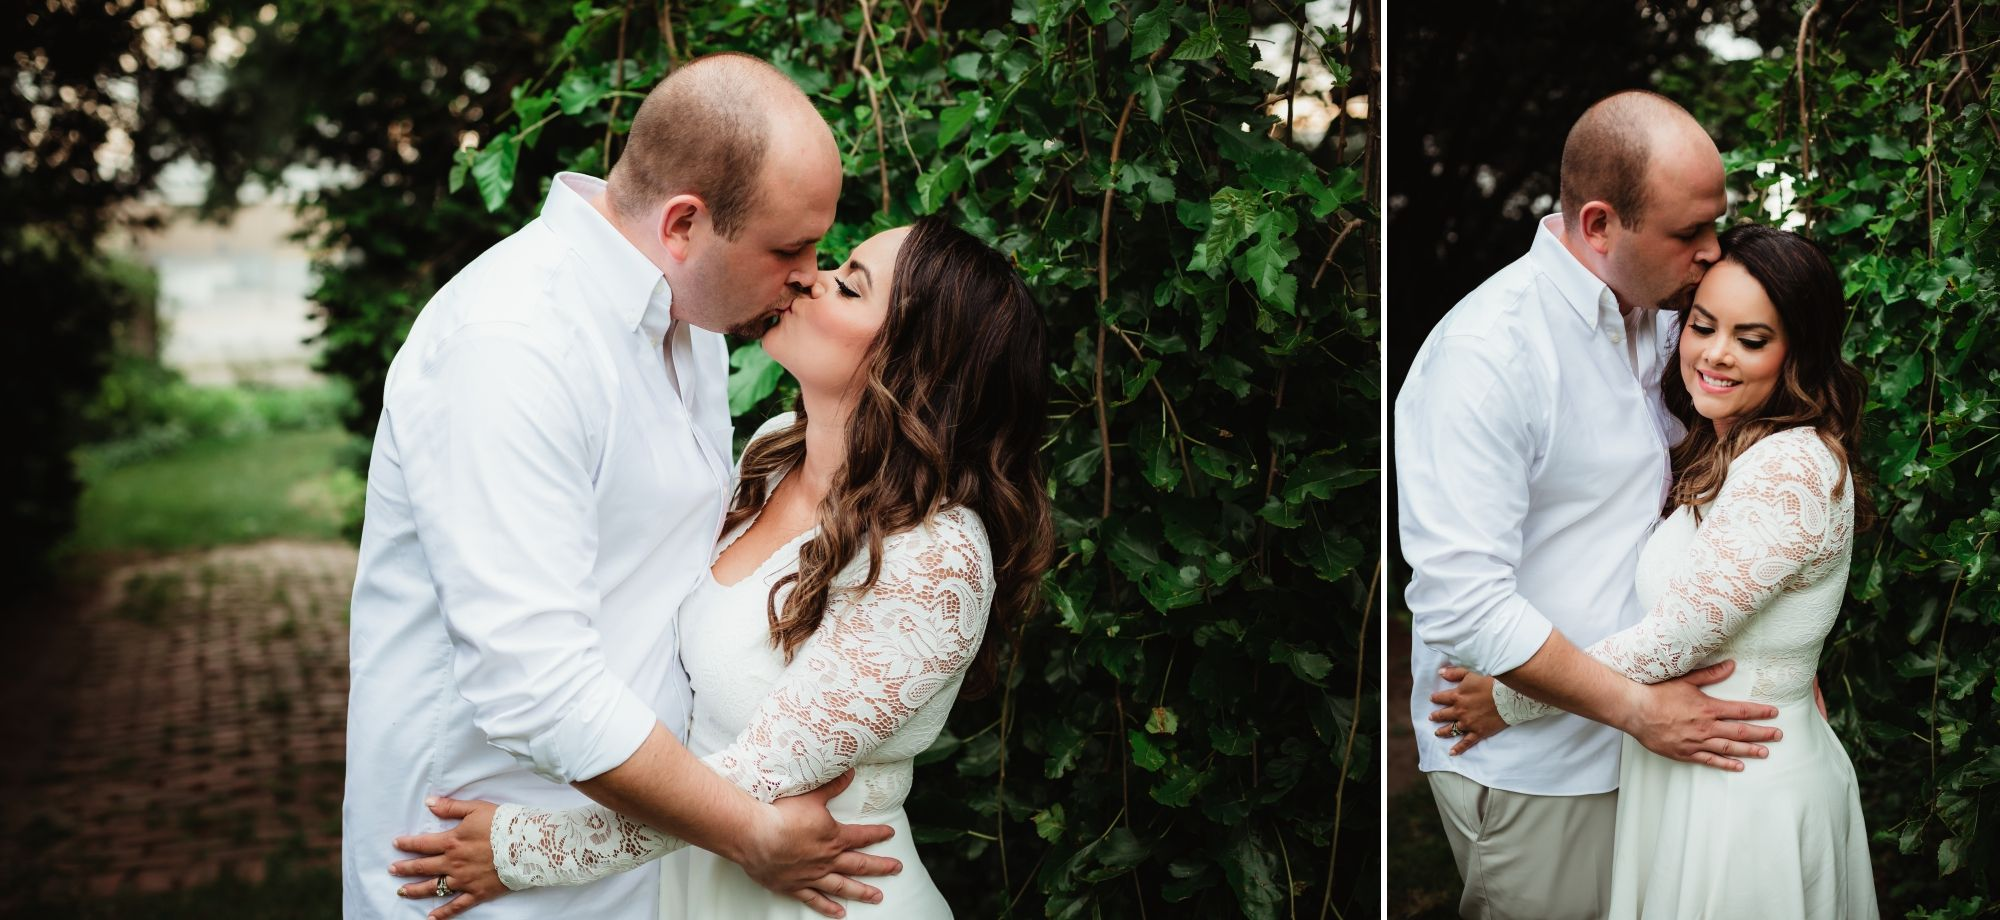 A husband and wife wearing white kissing and embracing in Cooley Gardens.